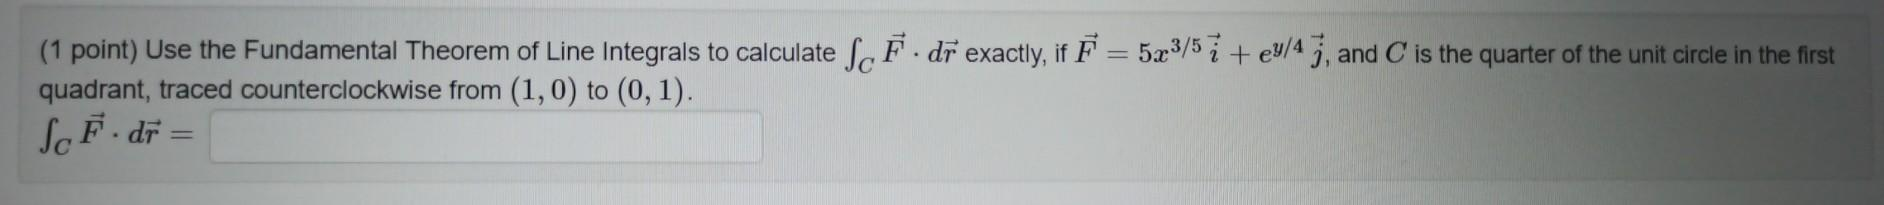 (1 point) Use the Fundamental Theorem of Line Integrals to calculate Sc F. dr exactly, if F = 523/57 + ey/47, and C is the qu